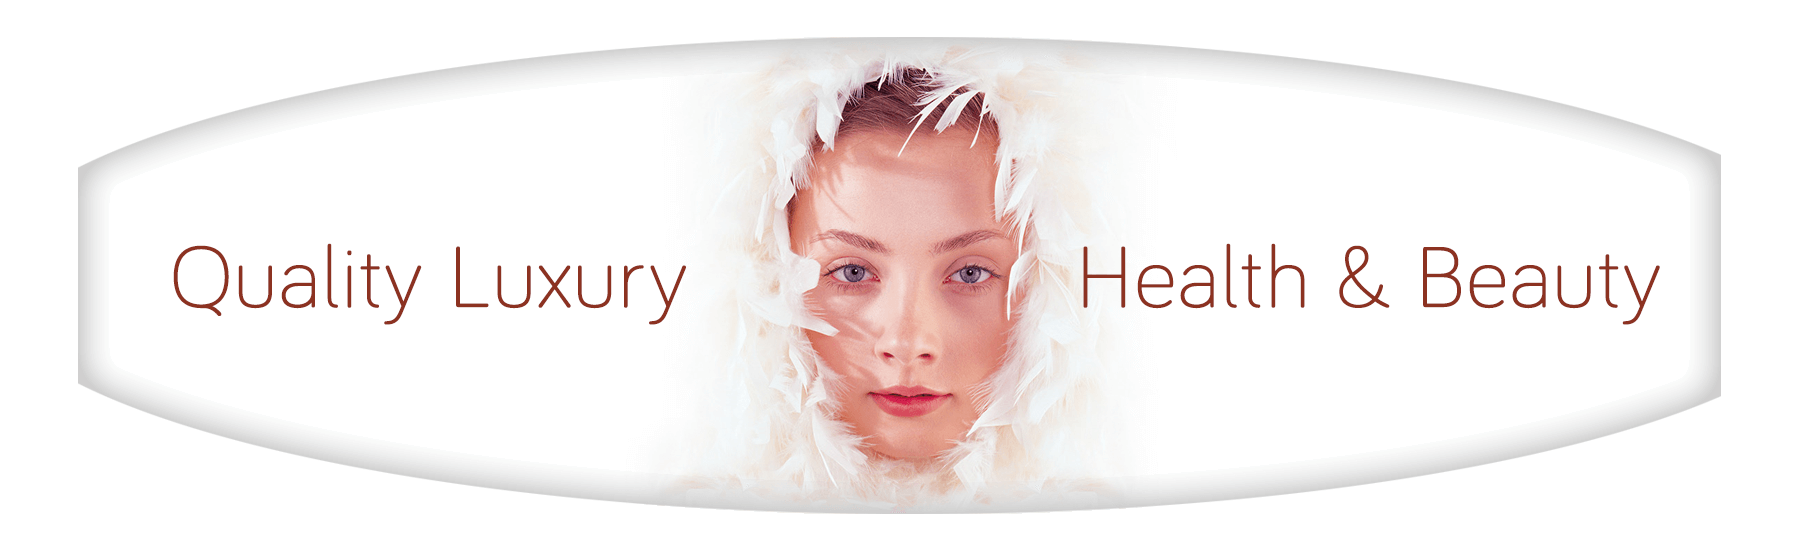 Wellsprings-medical-quality-luxury-health-beauty-fitness-service.png